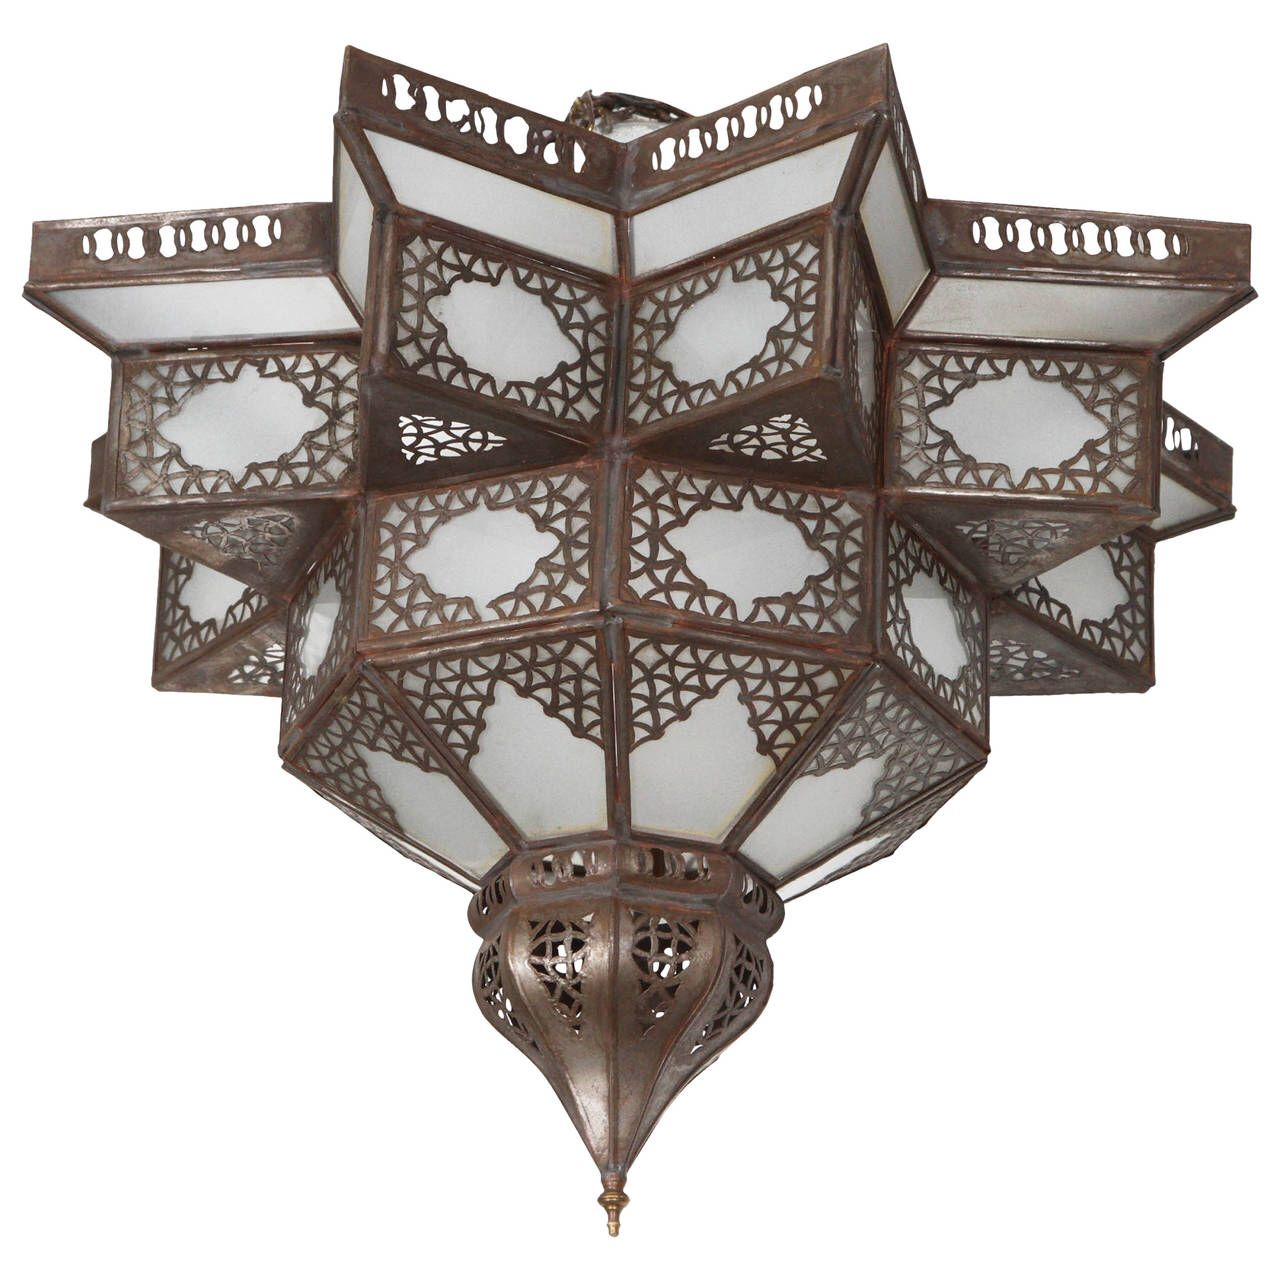 Moroccan Moorish Star Shape Frosted Glass Lantern Light Shade See More Antique And Modern Flush Mount At Http Glass Light Shades Glass Lantern Lantern Lights